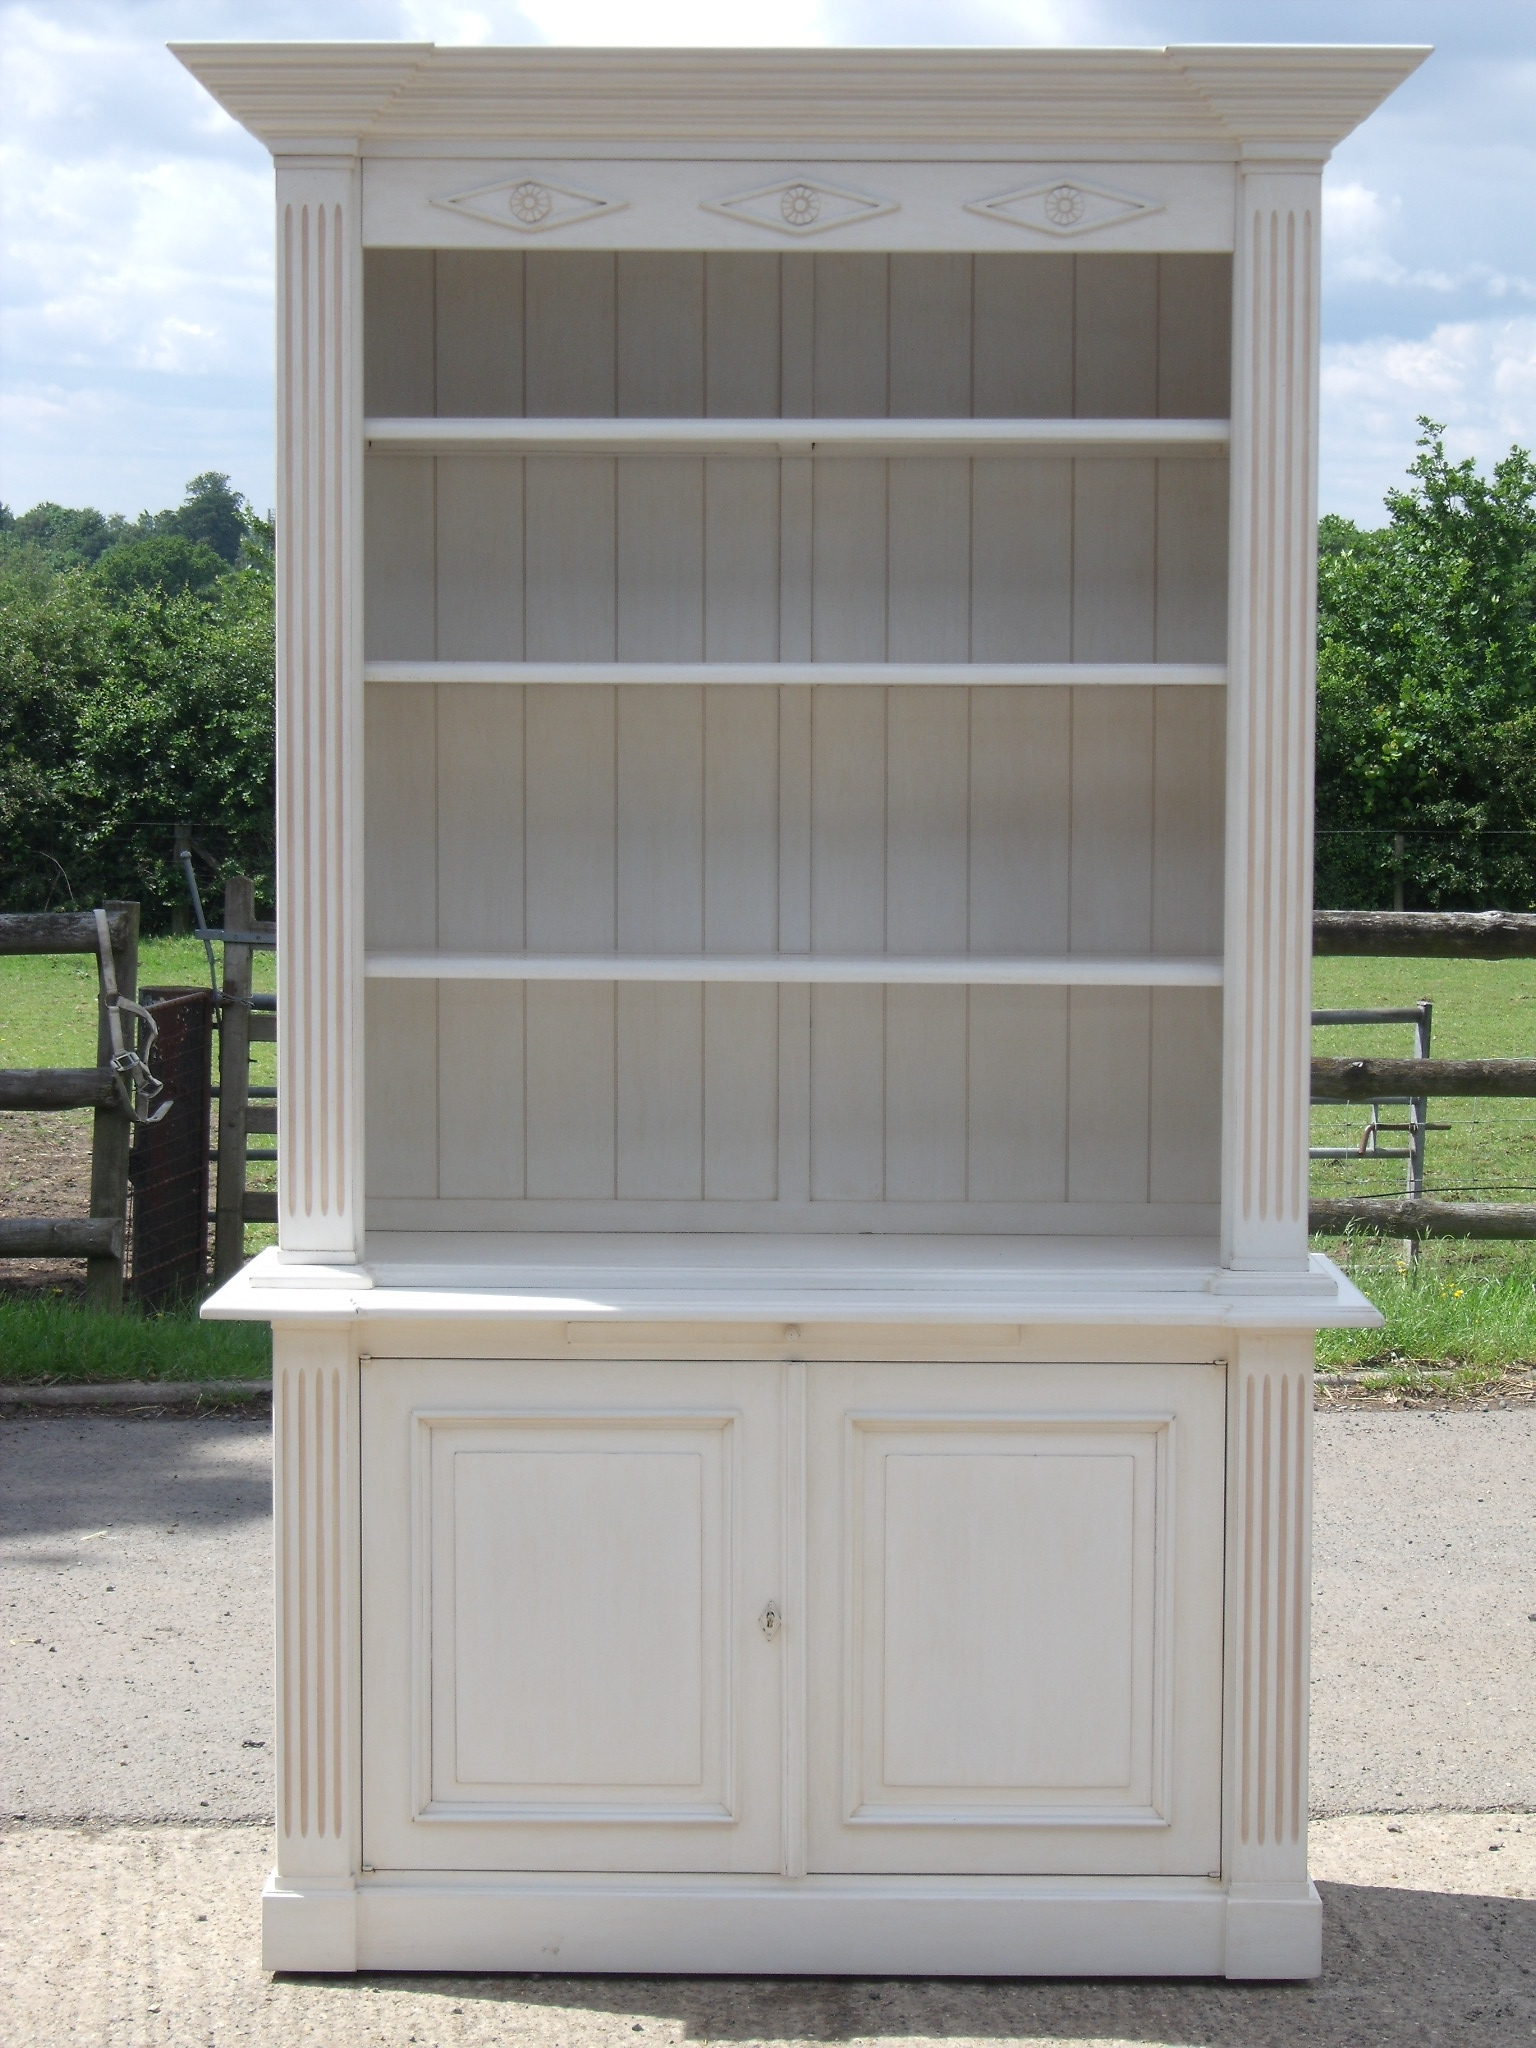 Popular Bookcases With Cupboard Under Pertaining To Classically Styled French Painted Bookcase With Cupboard Below (View 2 of 15)